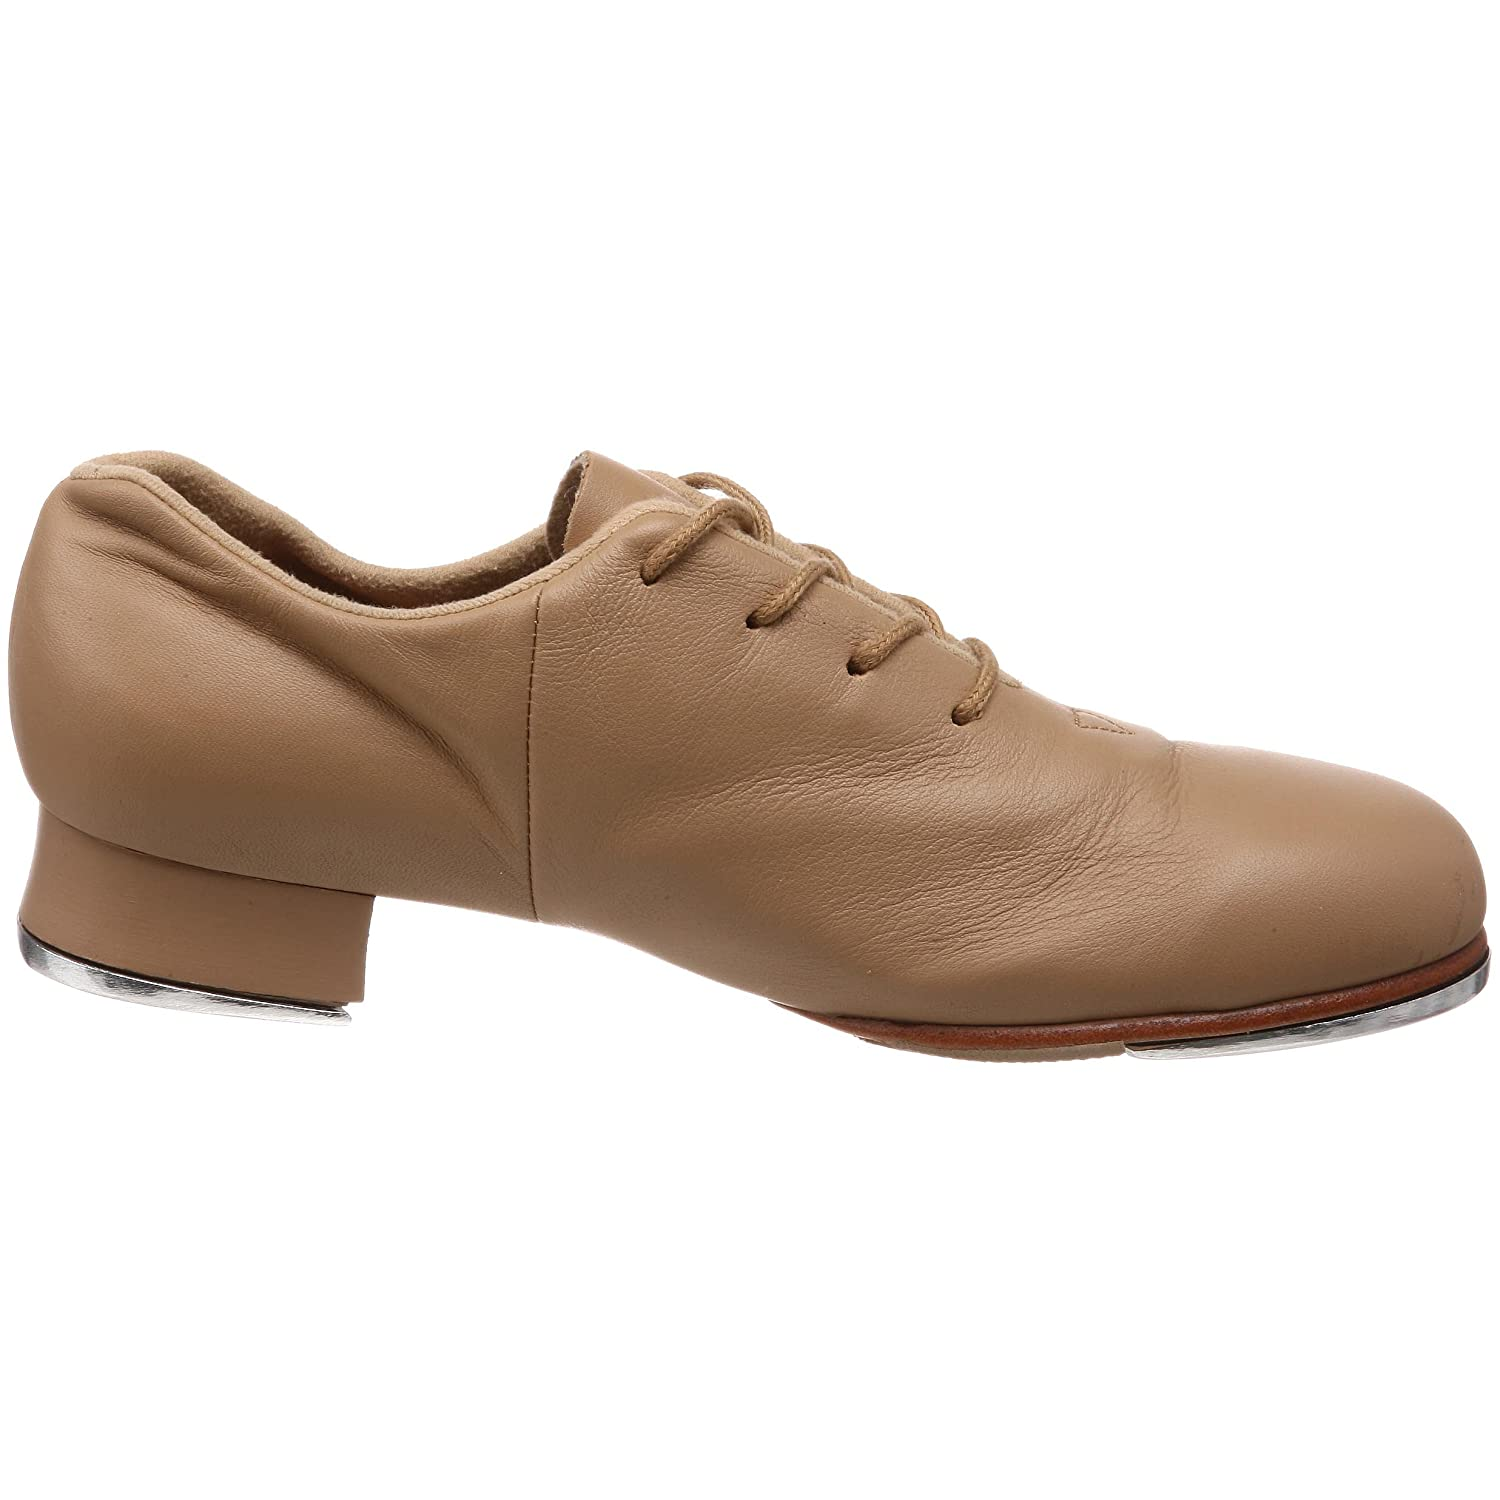 Bloch Dance Womens Tap-Flex Leather Tap Shoe S0388L